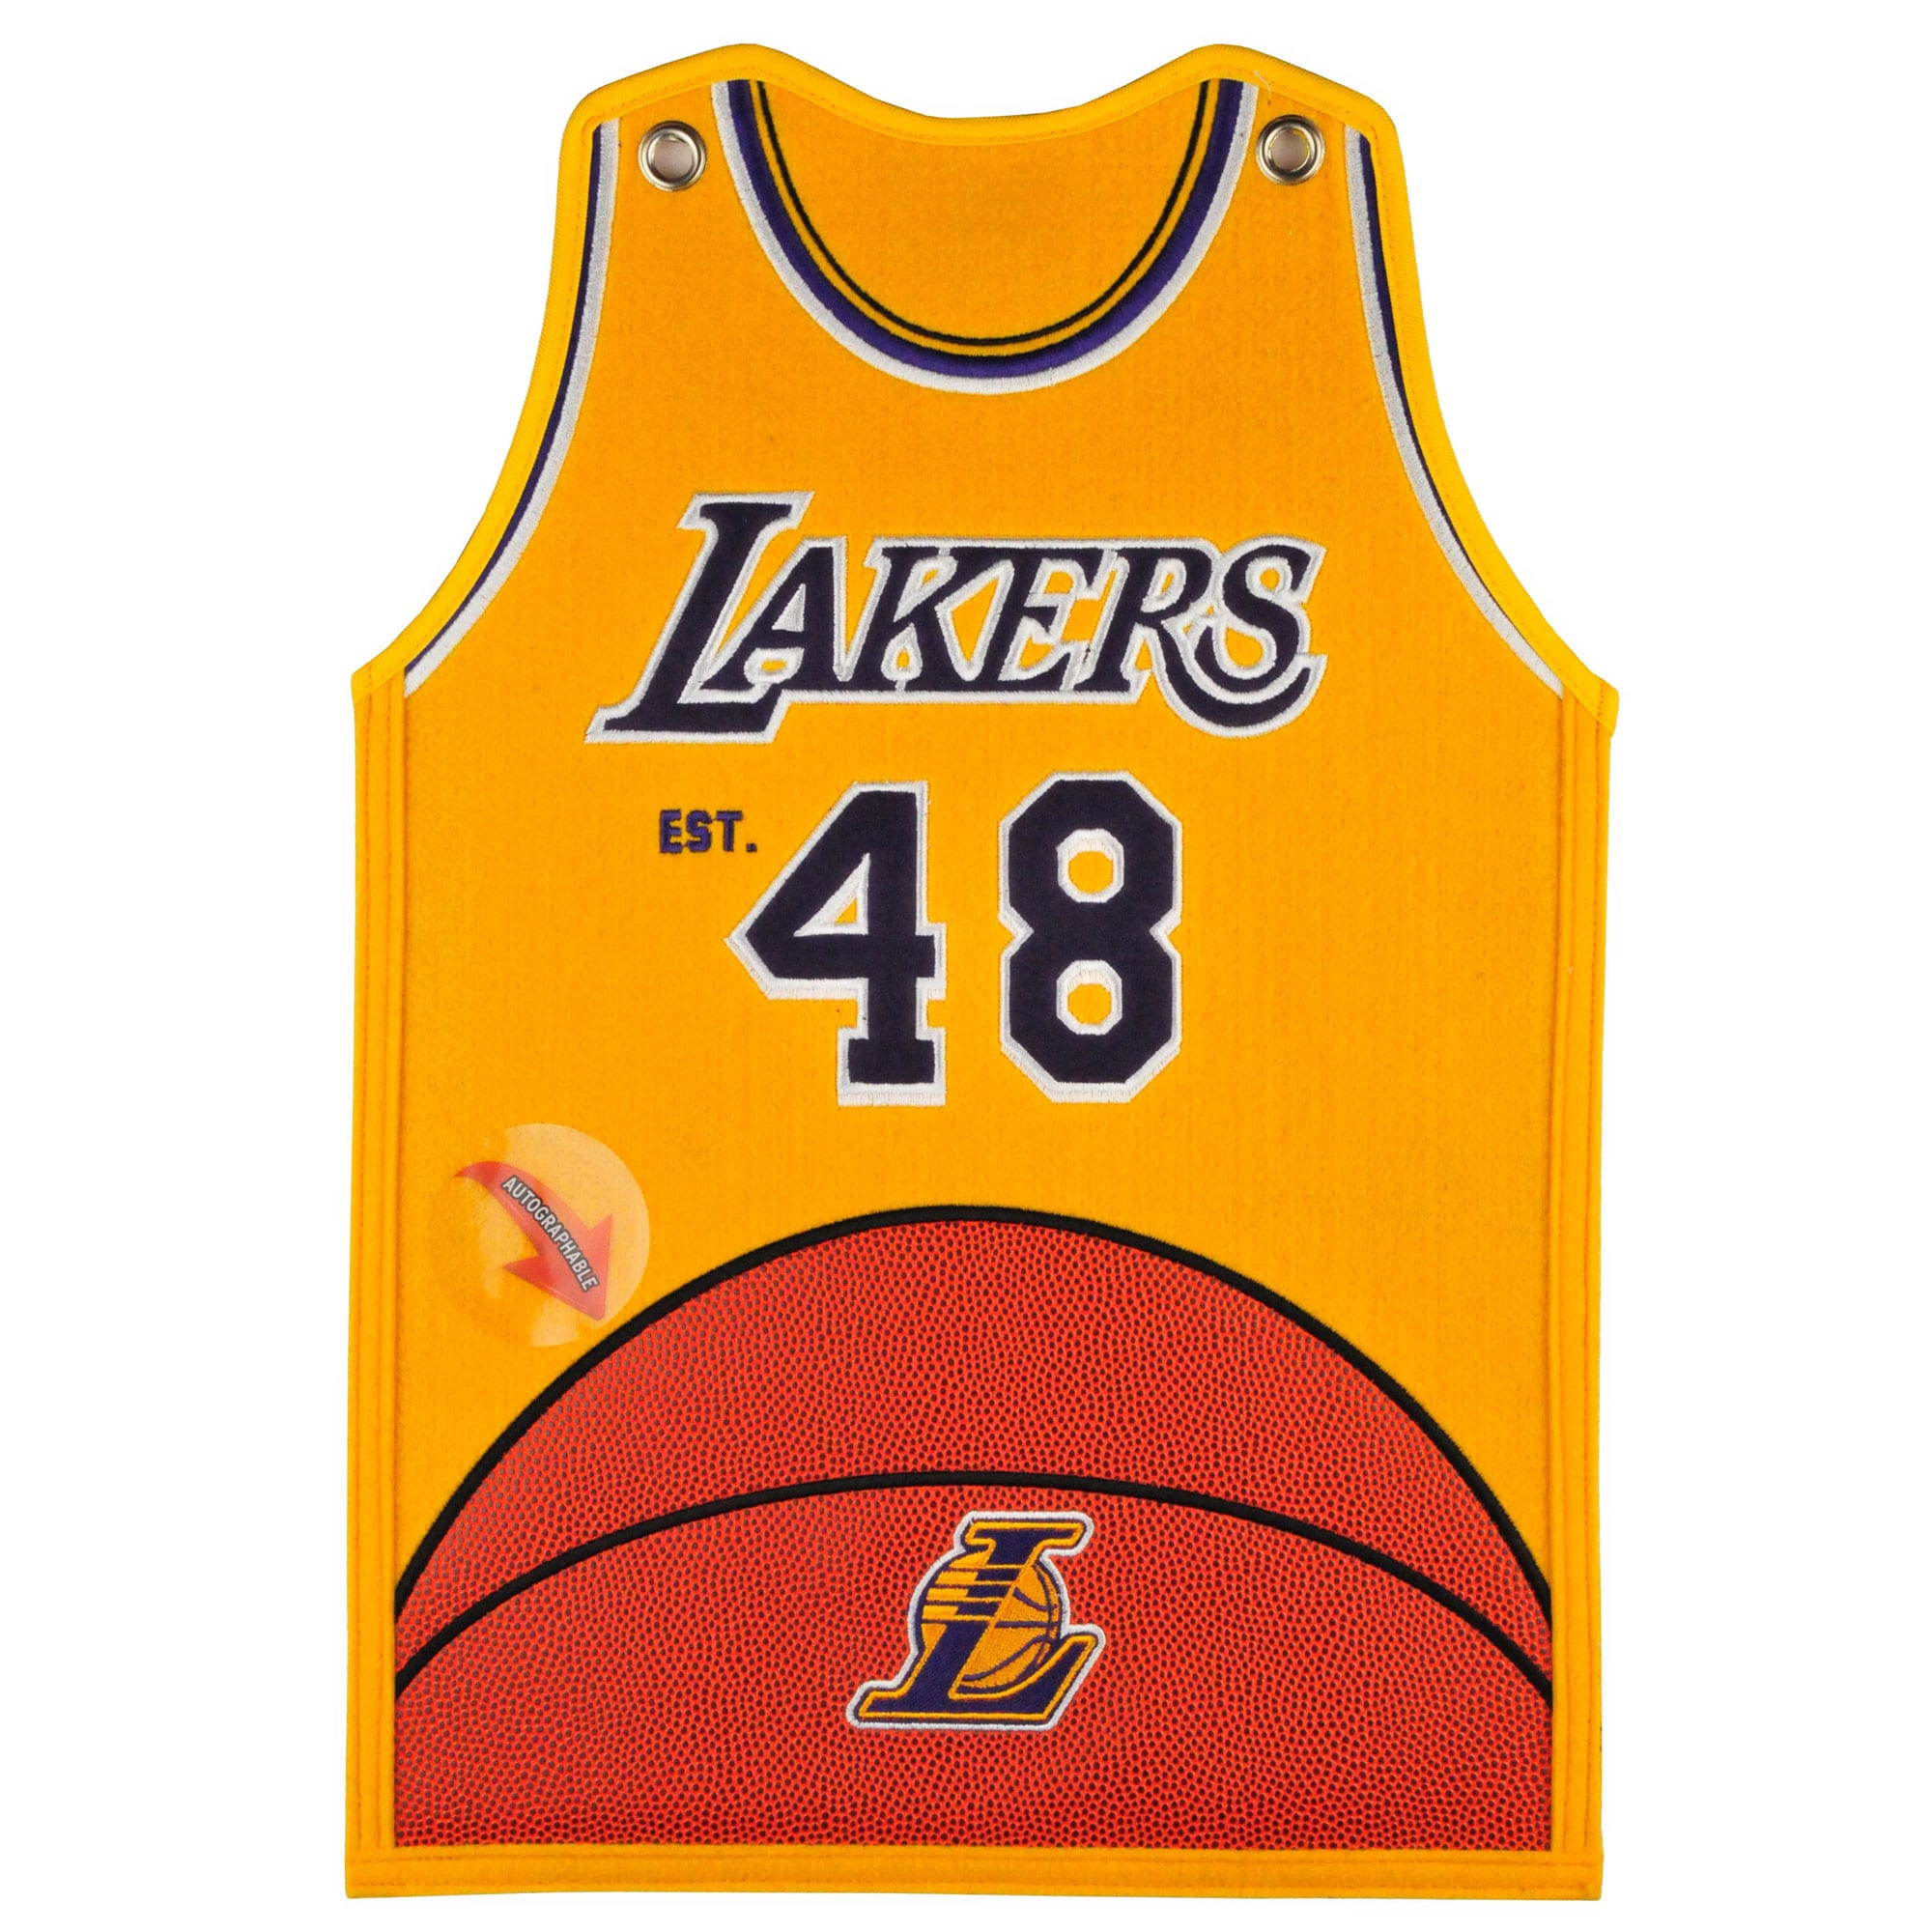 Los Angeles Lakers 20'' x 18'' Jersey Traditions Banner